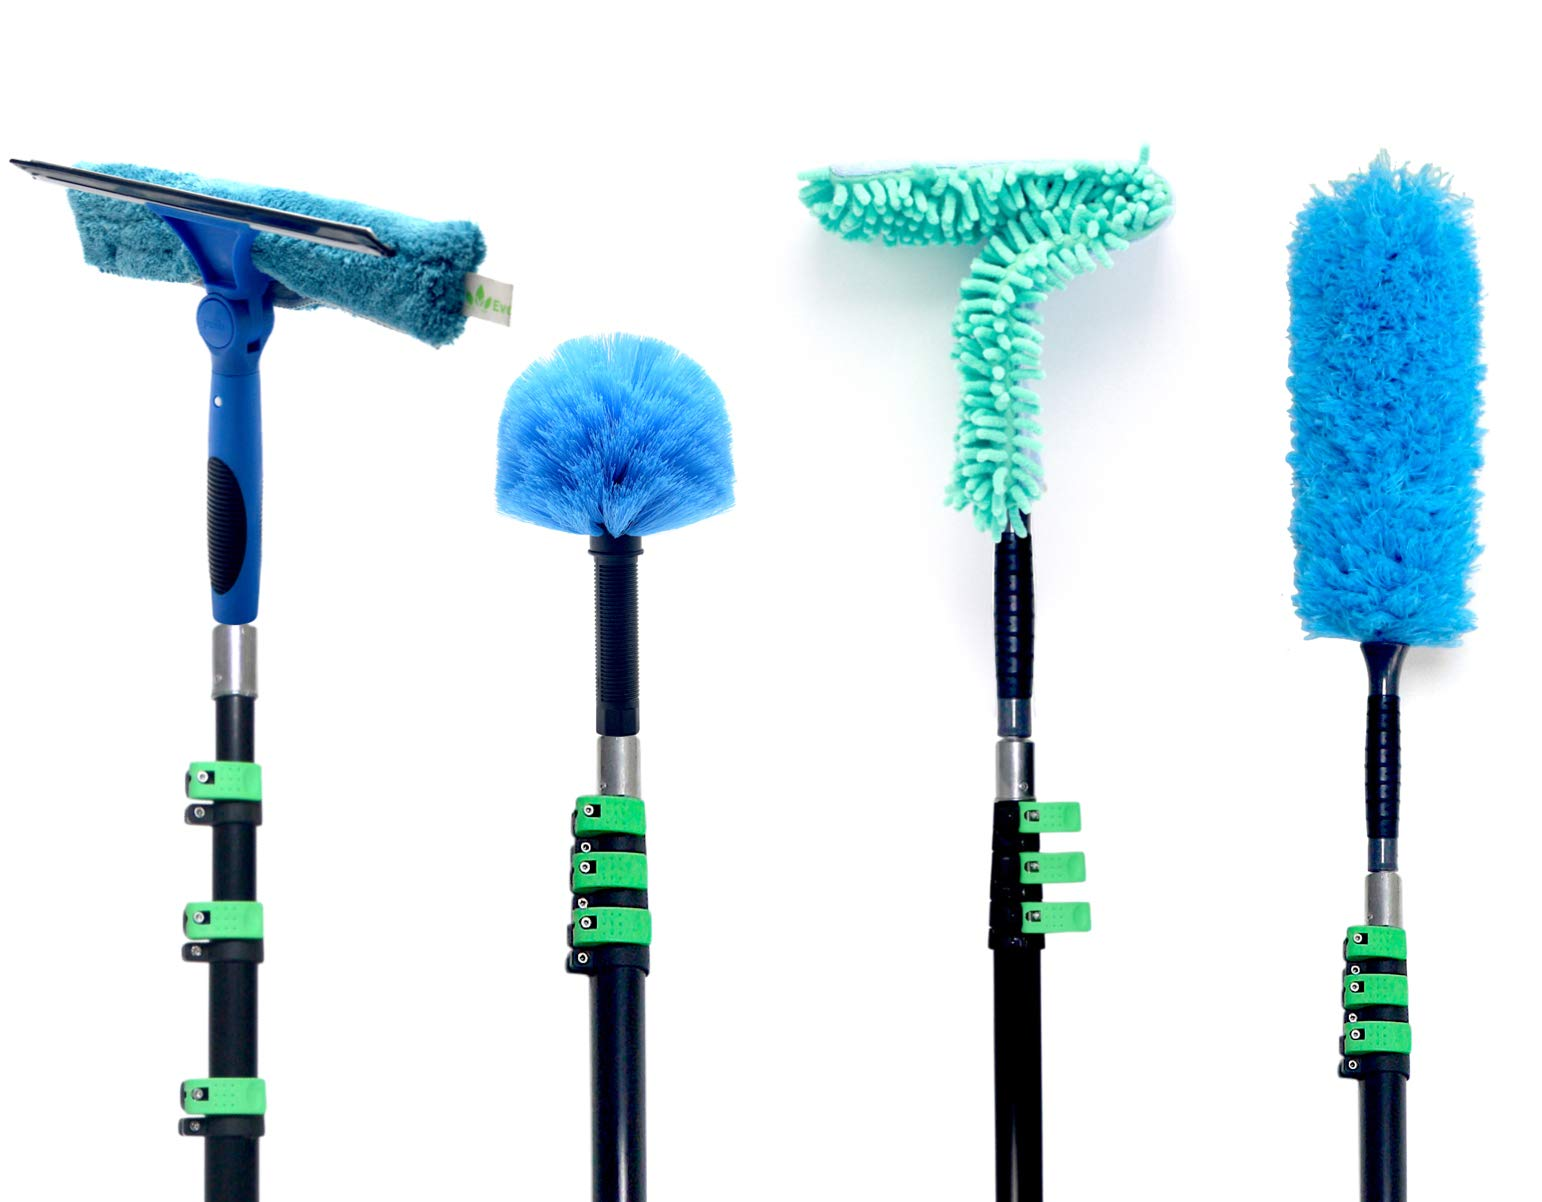 EVERSPROUT 4-Pack Duster Squeegee Kit with Extension-Pole (30+ Foot Reach) | Swivel Squeegee, Hand-Packaged Cobweb Duster, Microfiber Feather Duster, Flexible Ceiling Fan Duster, 24 ft Telescopic Pole